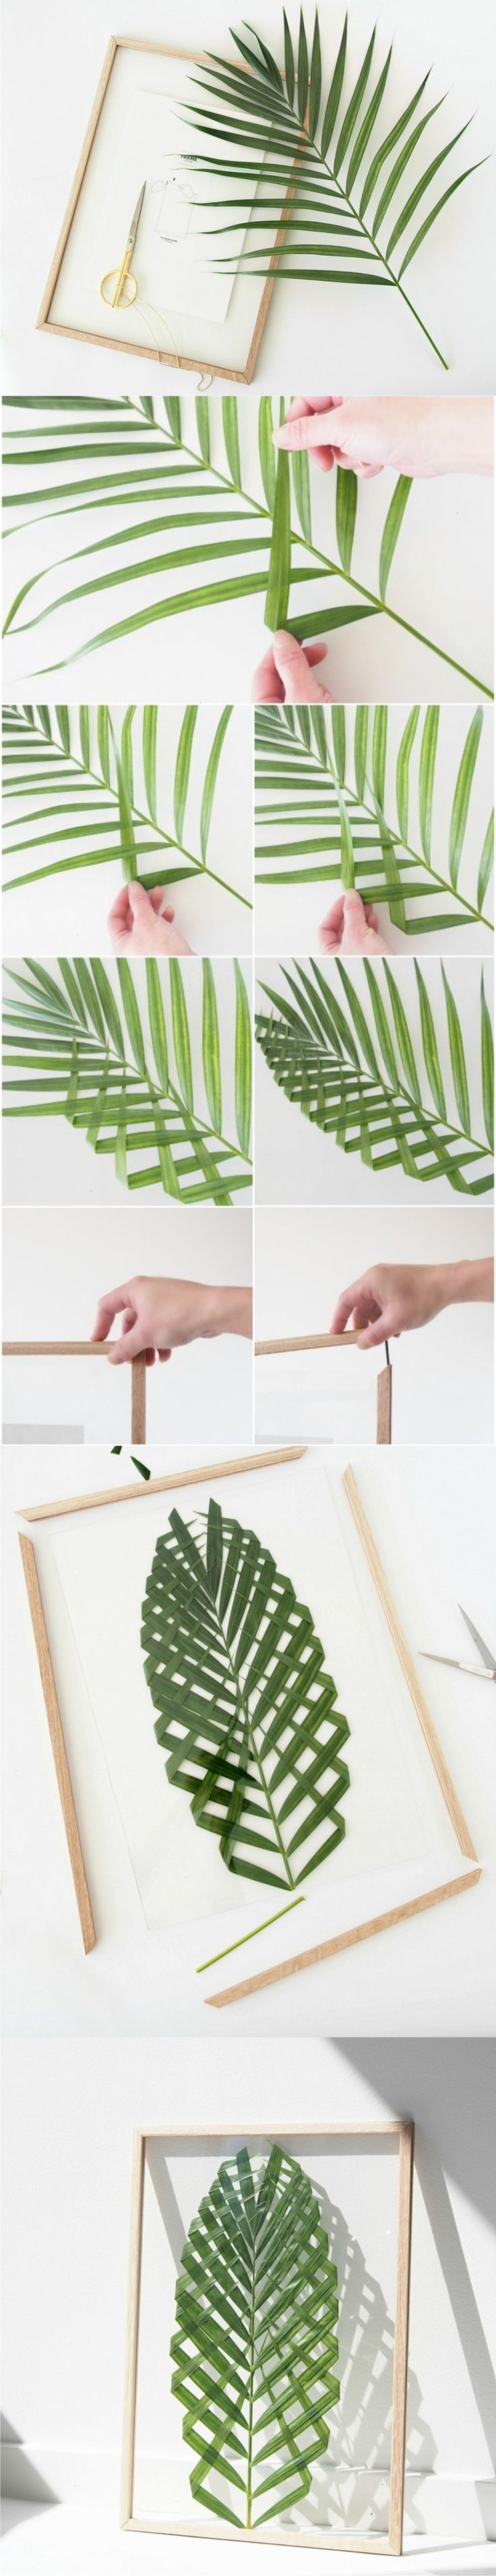 Cuadro con hoja de palma / Via http://monsterscircus.com/ | DIY : Do ...